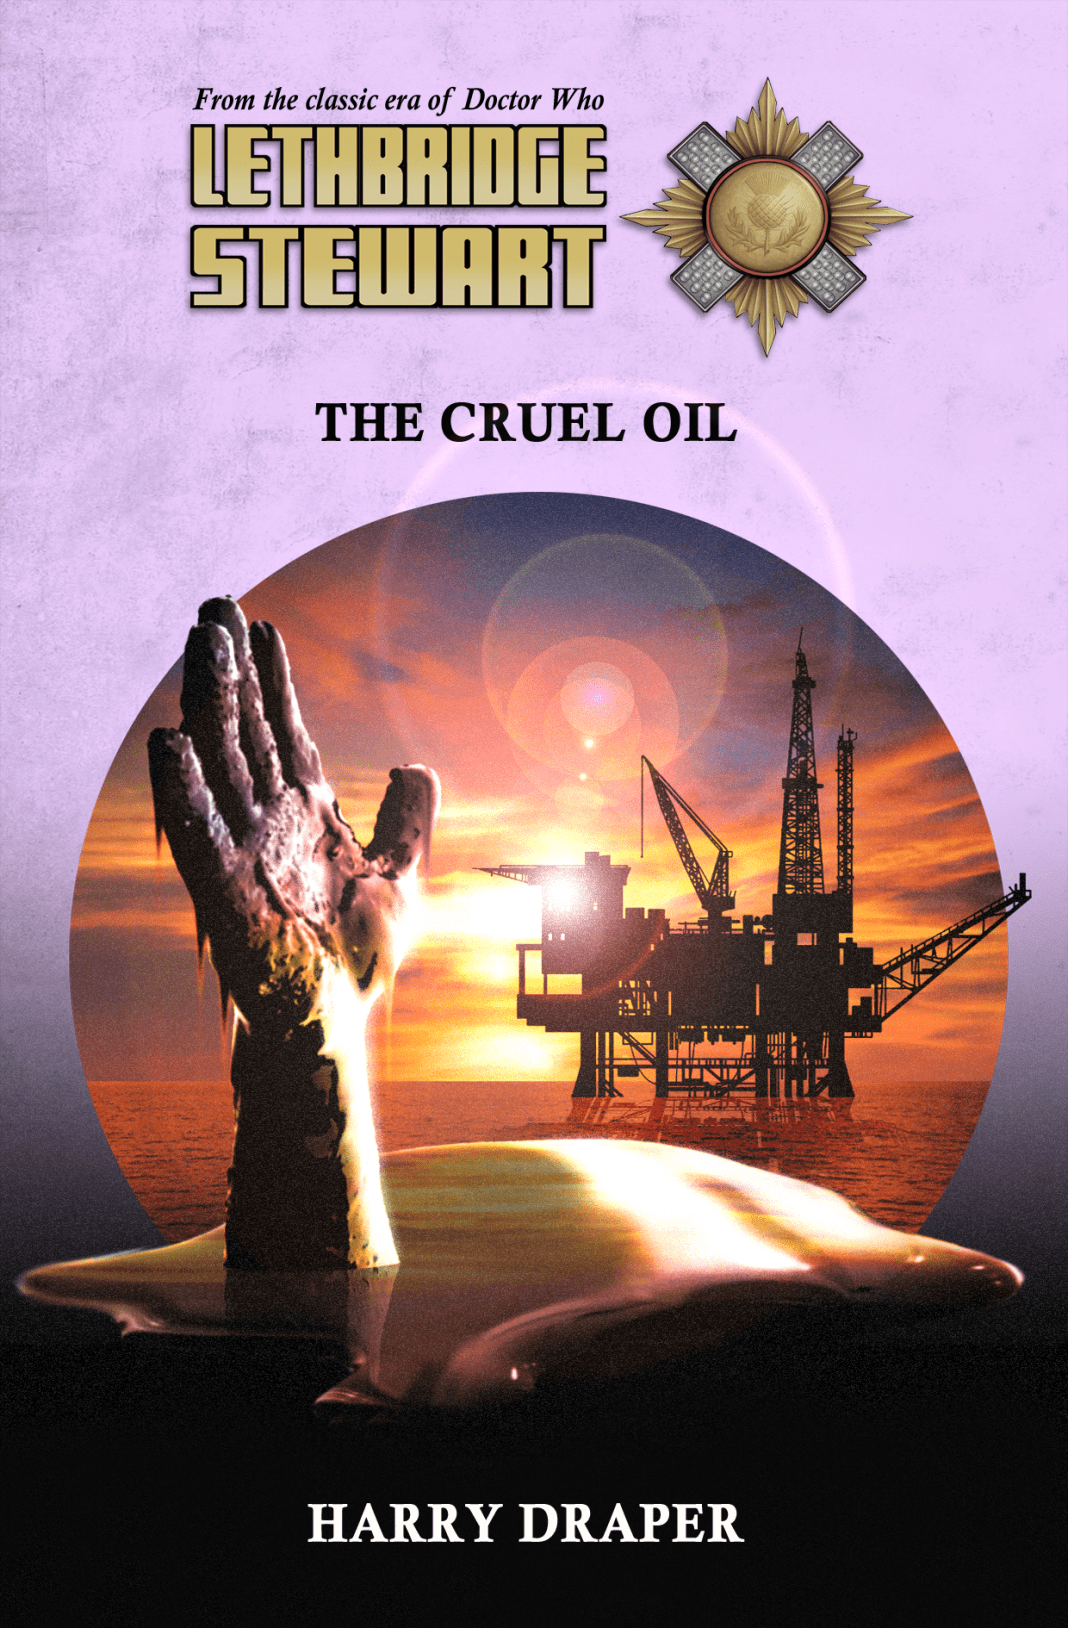 Free Short Story From Candy Jar Books The Cruel Oil